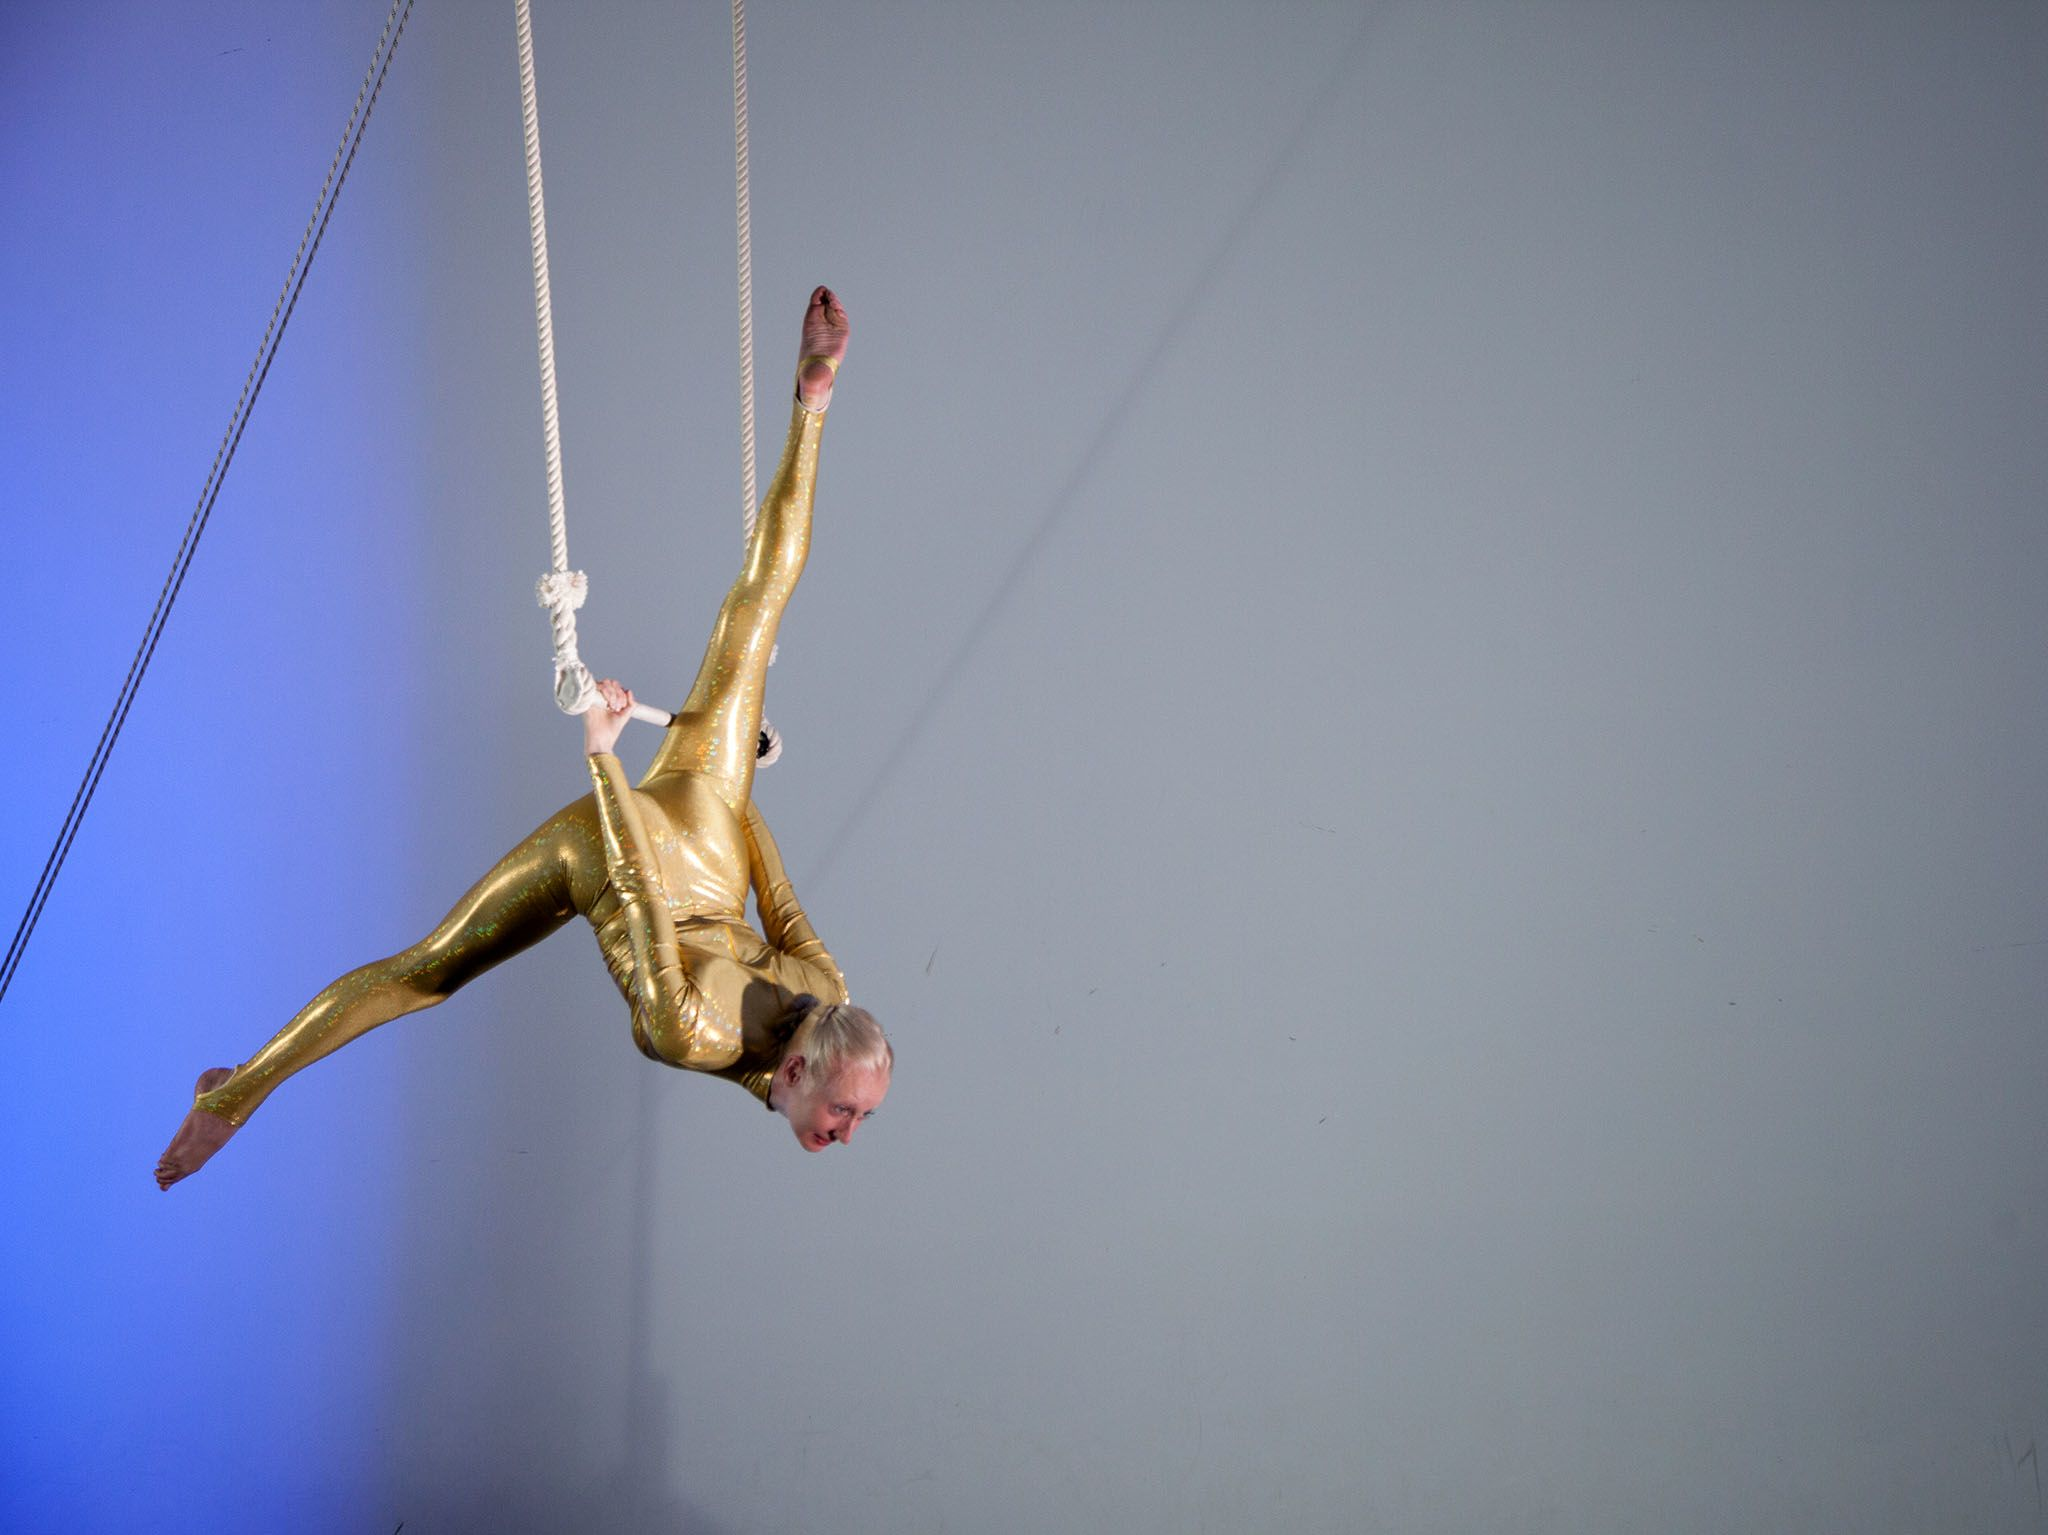 Katie Hardwick shows how a trapeze artist utilizes pendulum motion.